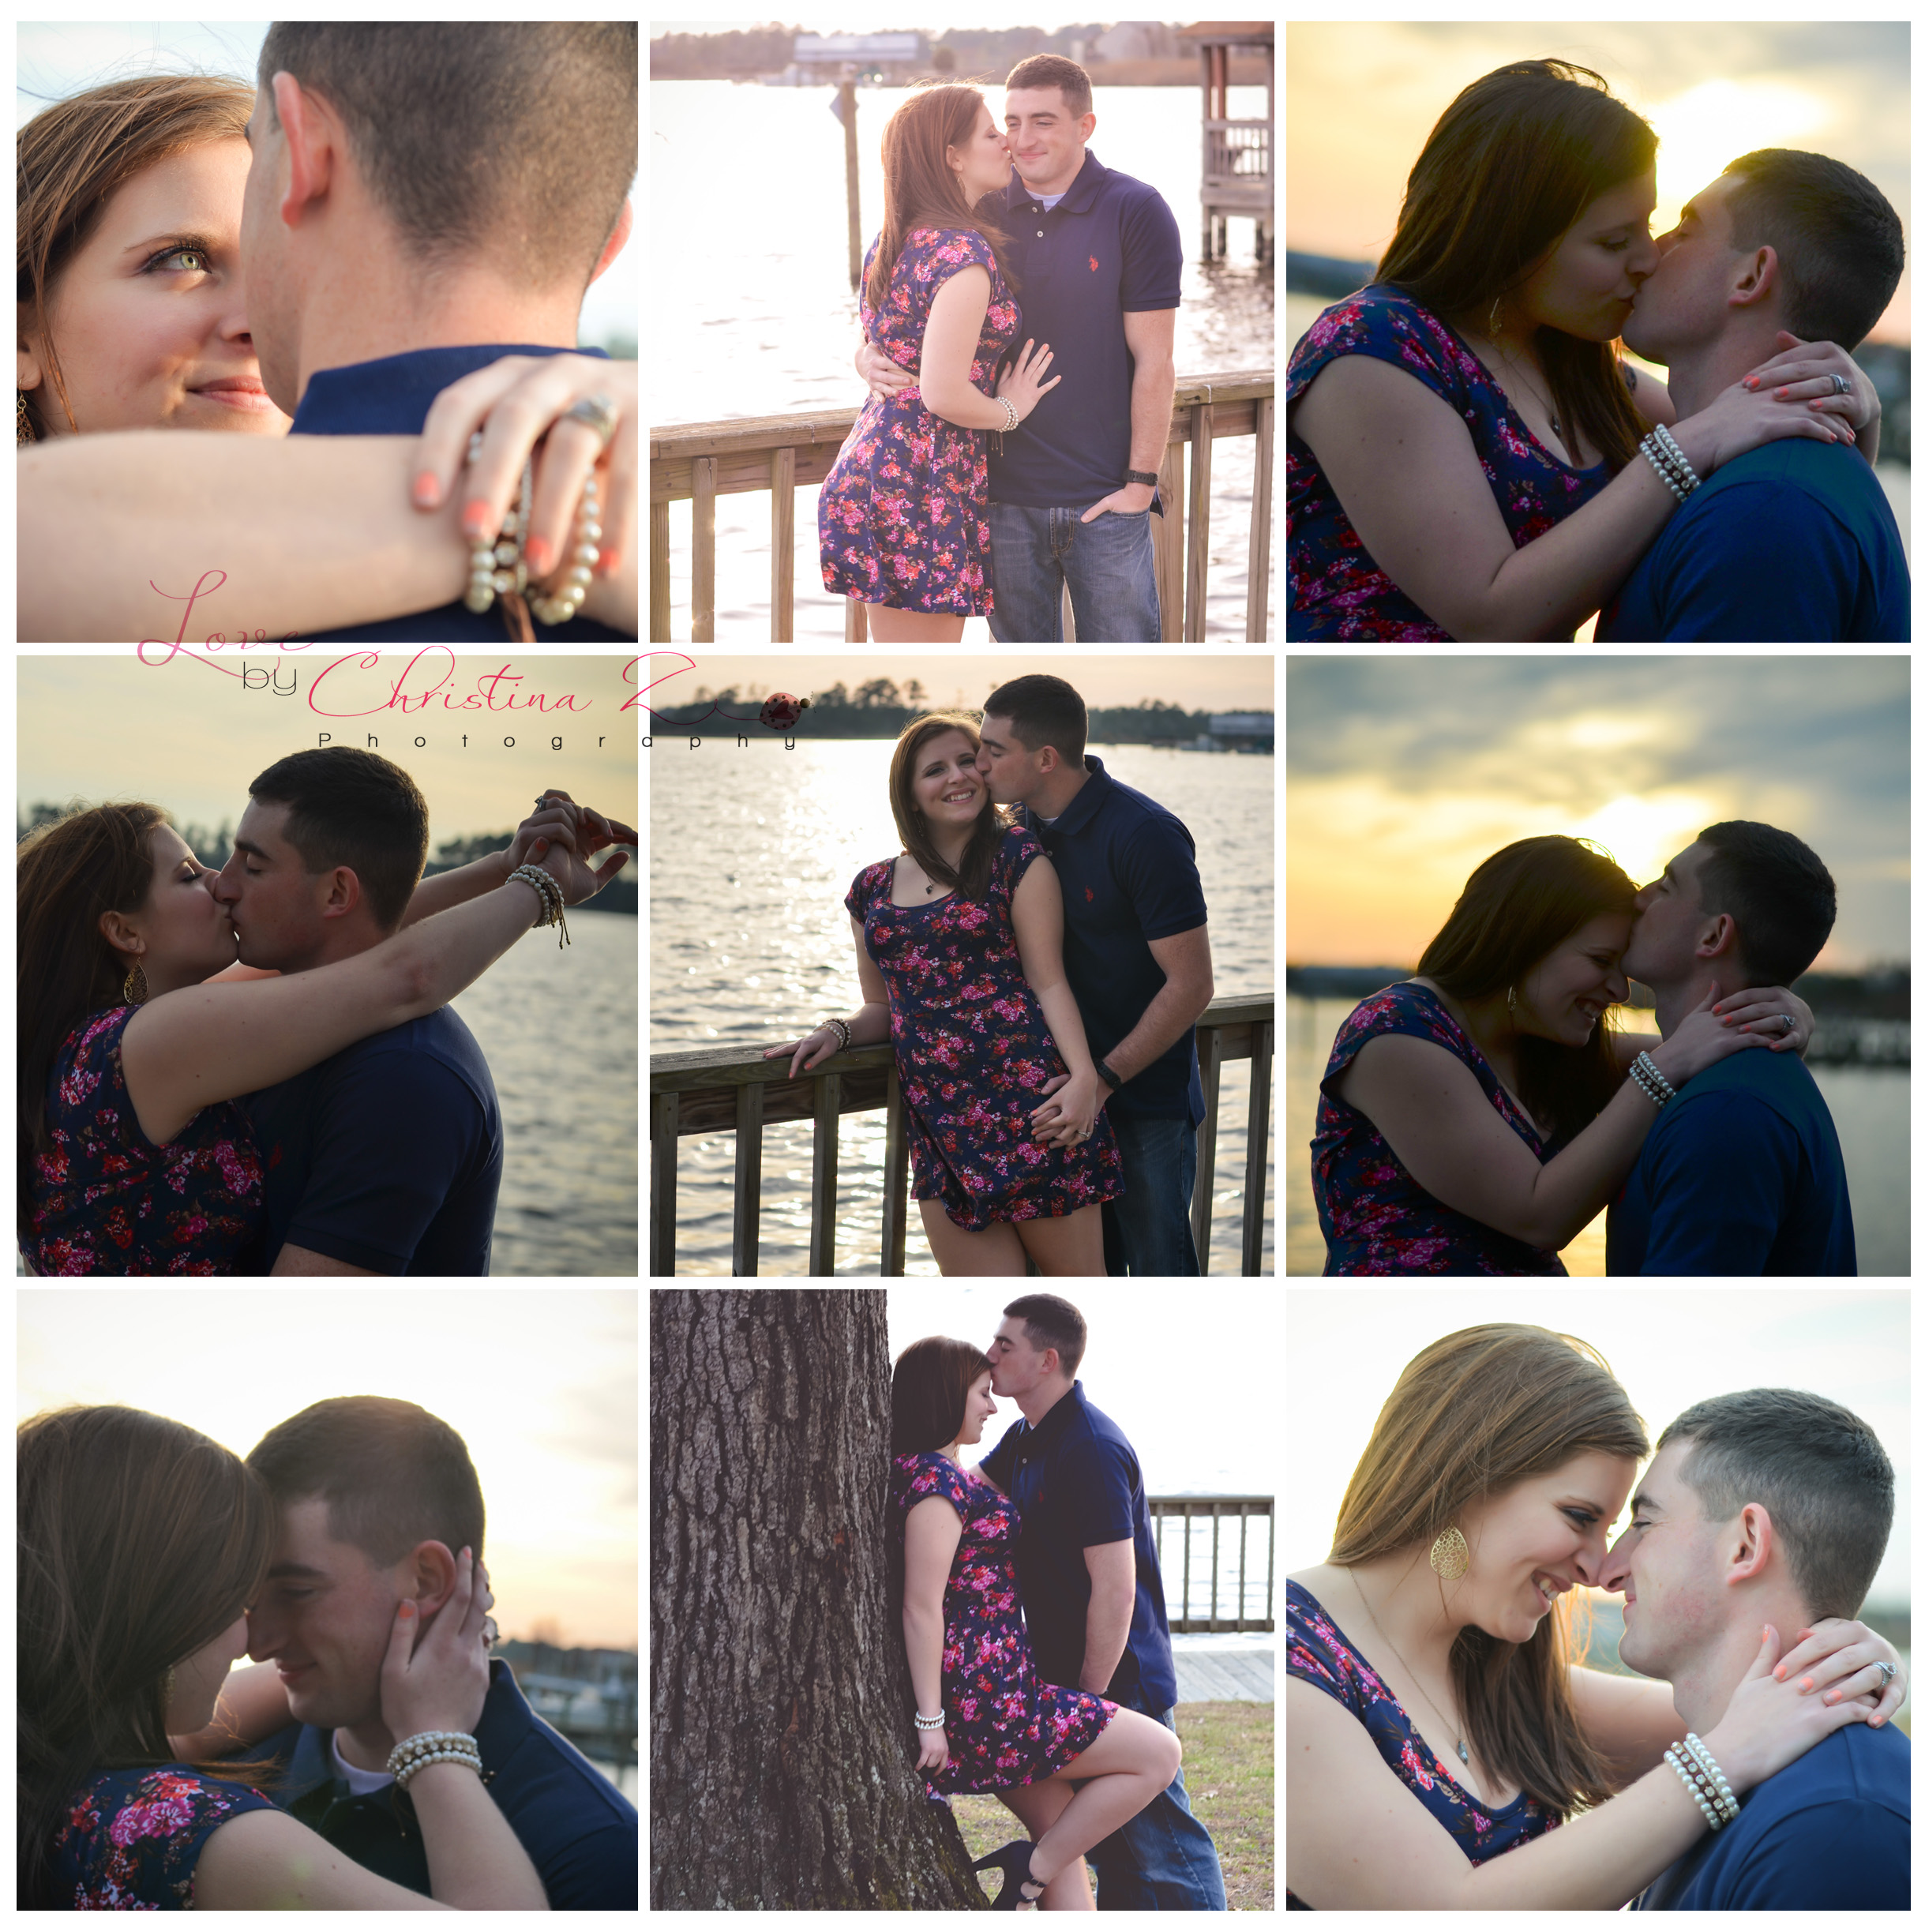 Couple in LOVE Outdoor Photo Session | Love by Christina Z Photography ©